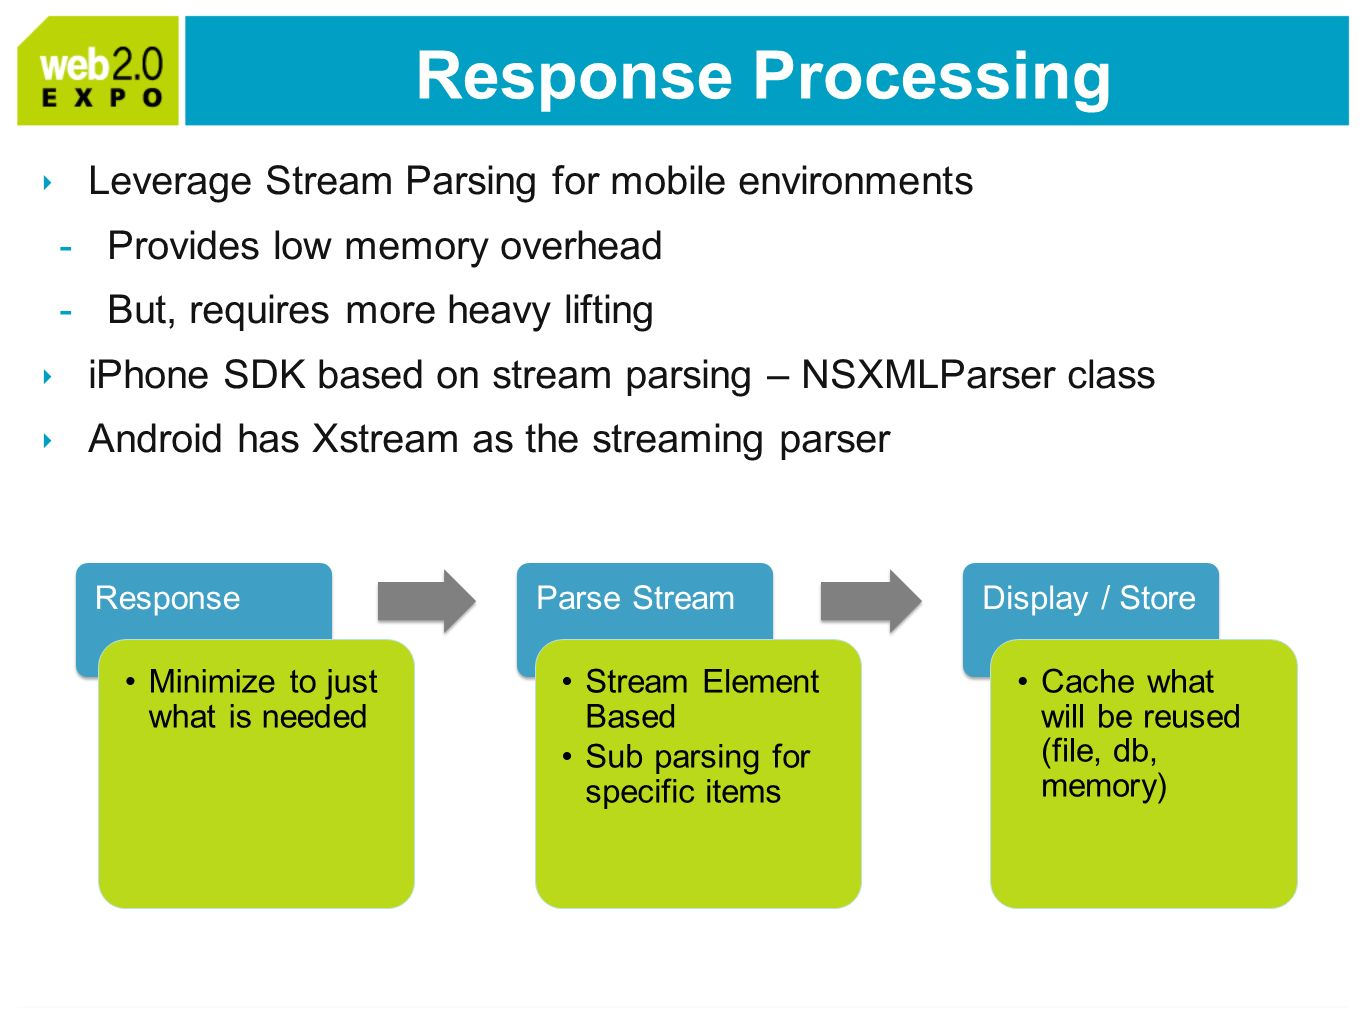 Response Processing Leverage Stream Parsing for mobile environments -Provides low memory overhead -But, requires more heavy lifting iPhone SDK based on stream parsing – NSXMLParser class Android has Xstream as the streaming parser Response Minimize to just what is needed Parse Stream Stream Element Based Sub parsing for specific items Display / Store Cache what will be reused (file, db, memory)